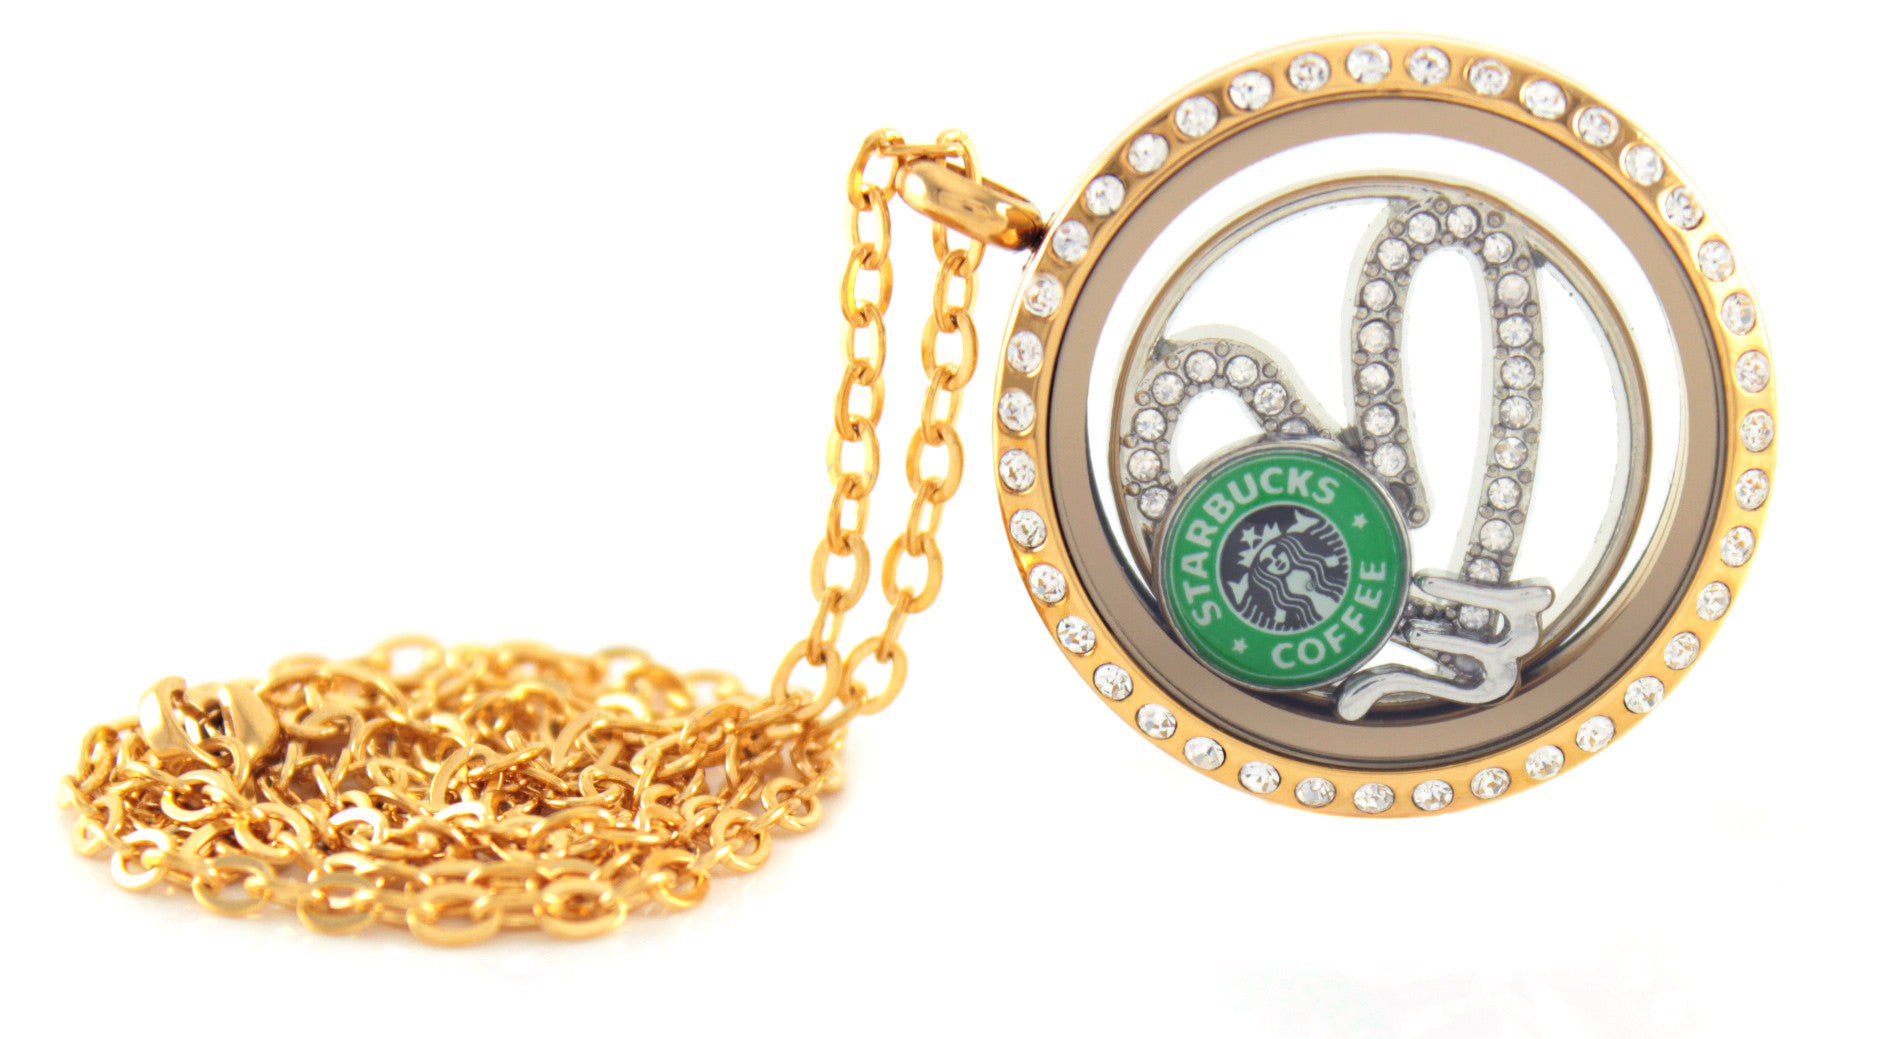 Stainless Steel Floating Locket Necklace with Choice of 6 Charms and 1 Plate (Gold Rhinestone)